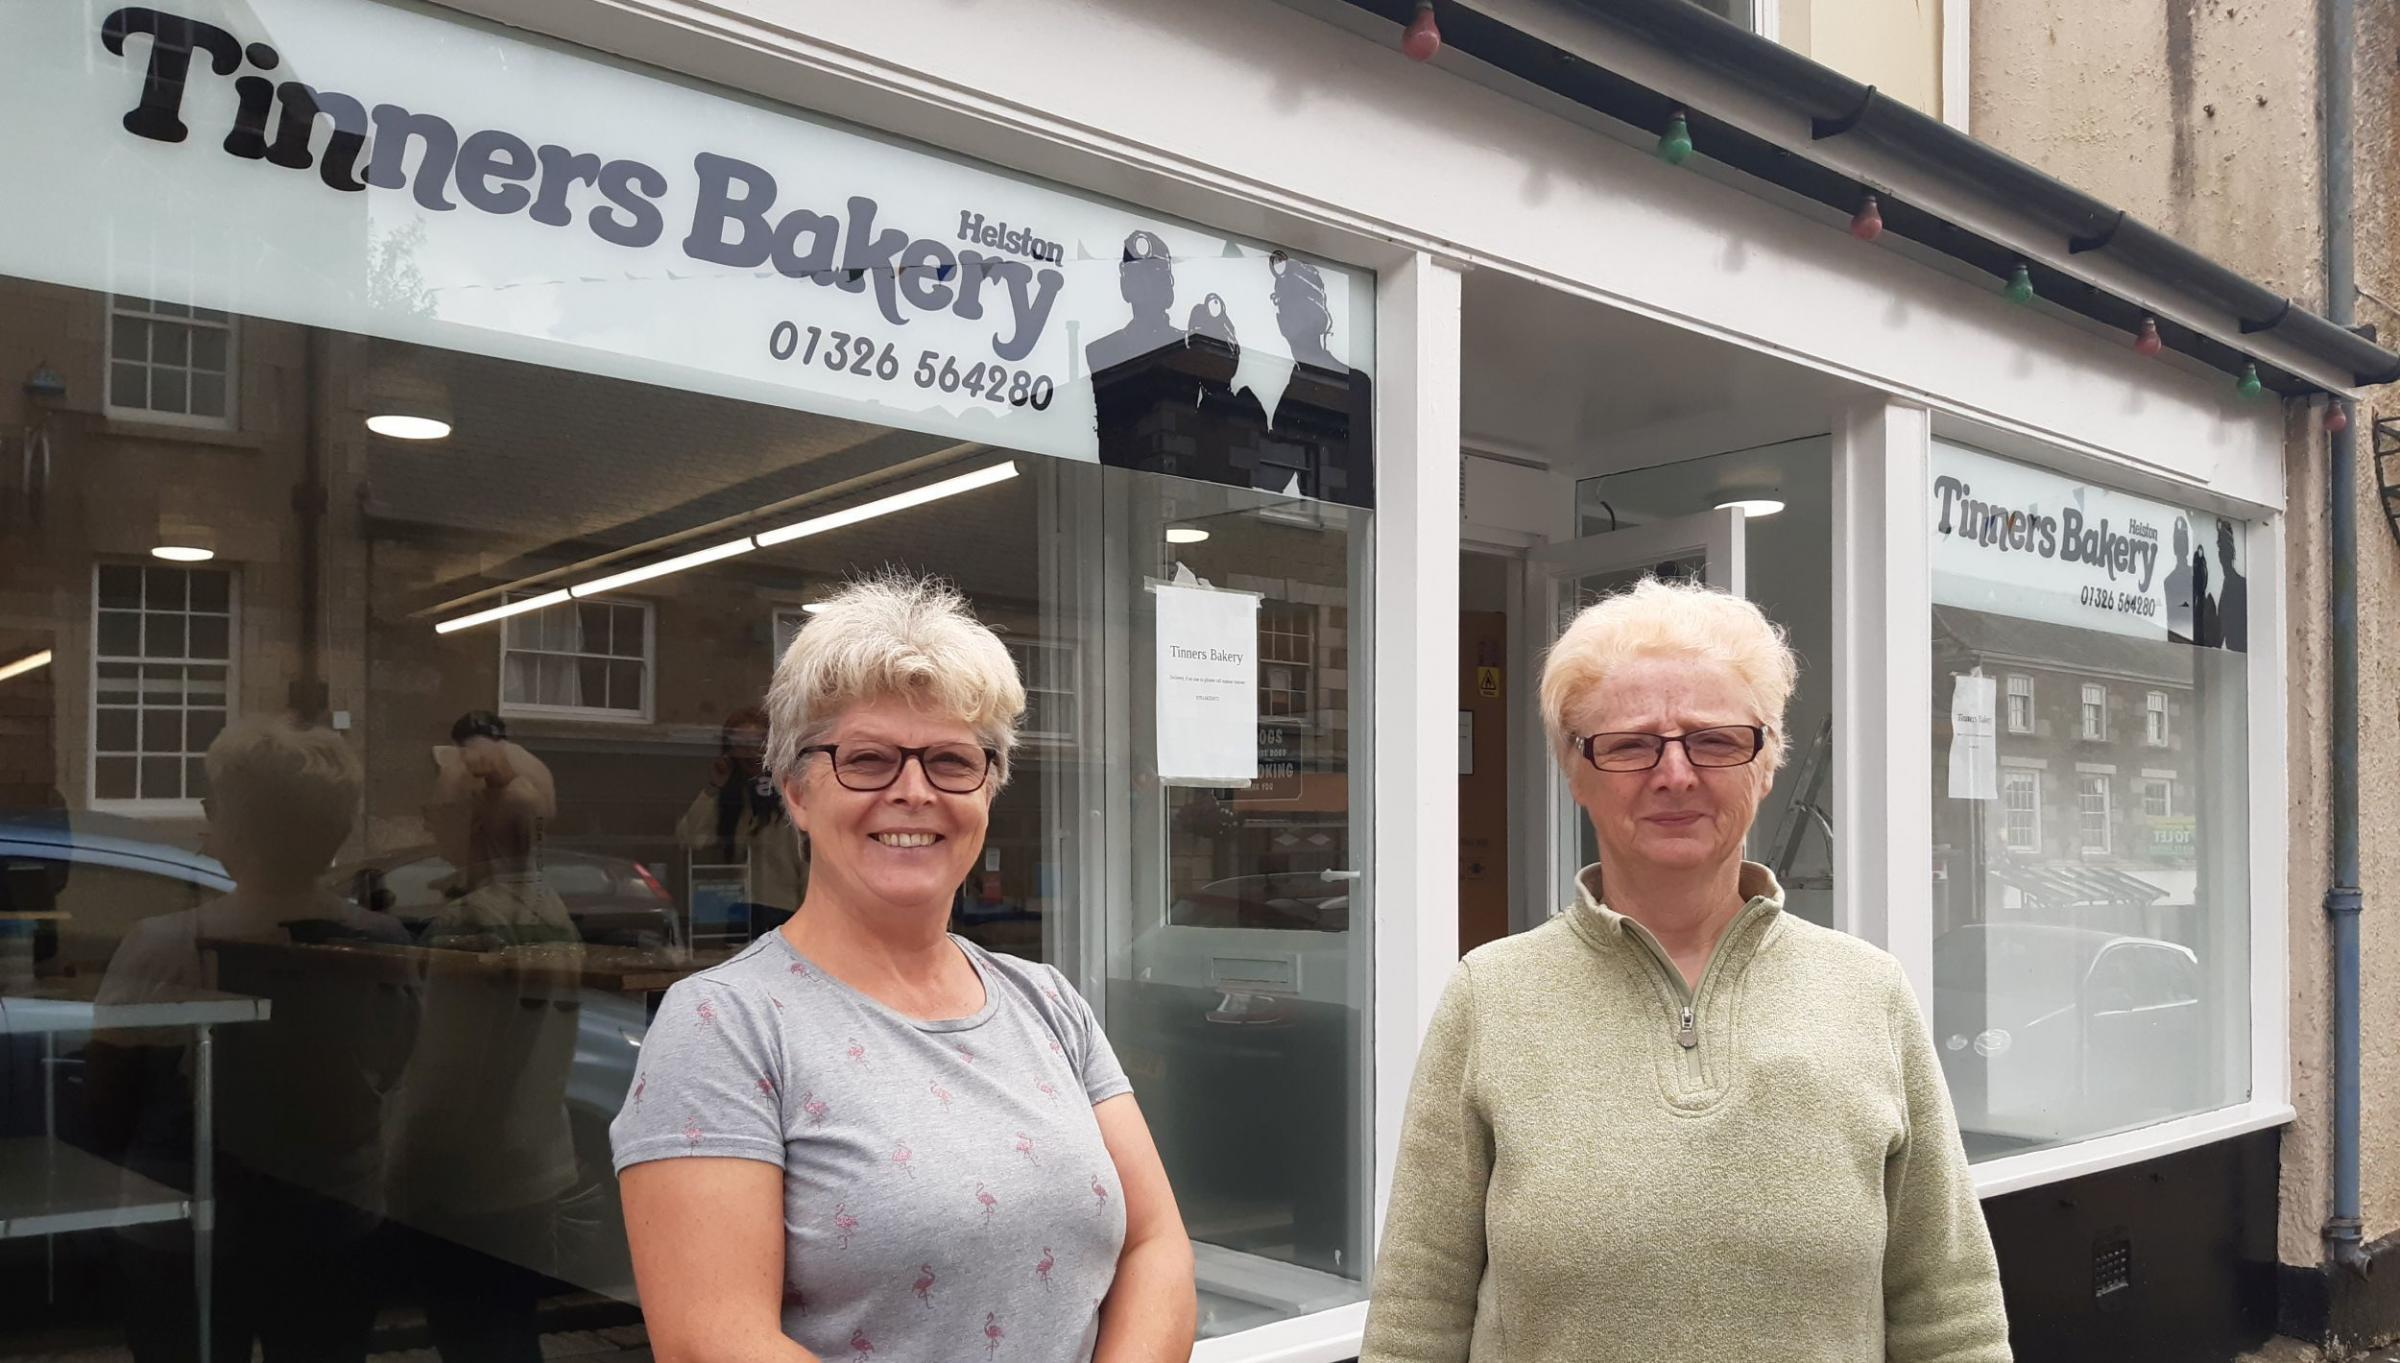 Horse & Jockey staff reunite to open new Helston bakery (with their own twist)